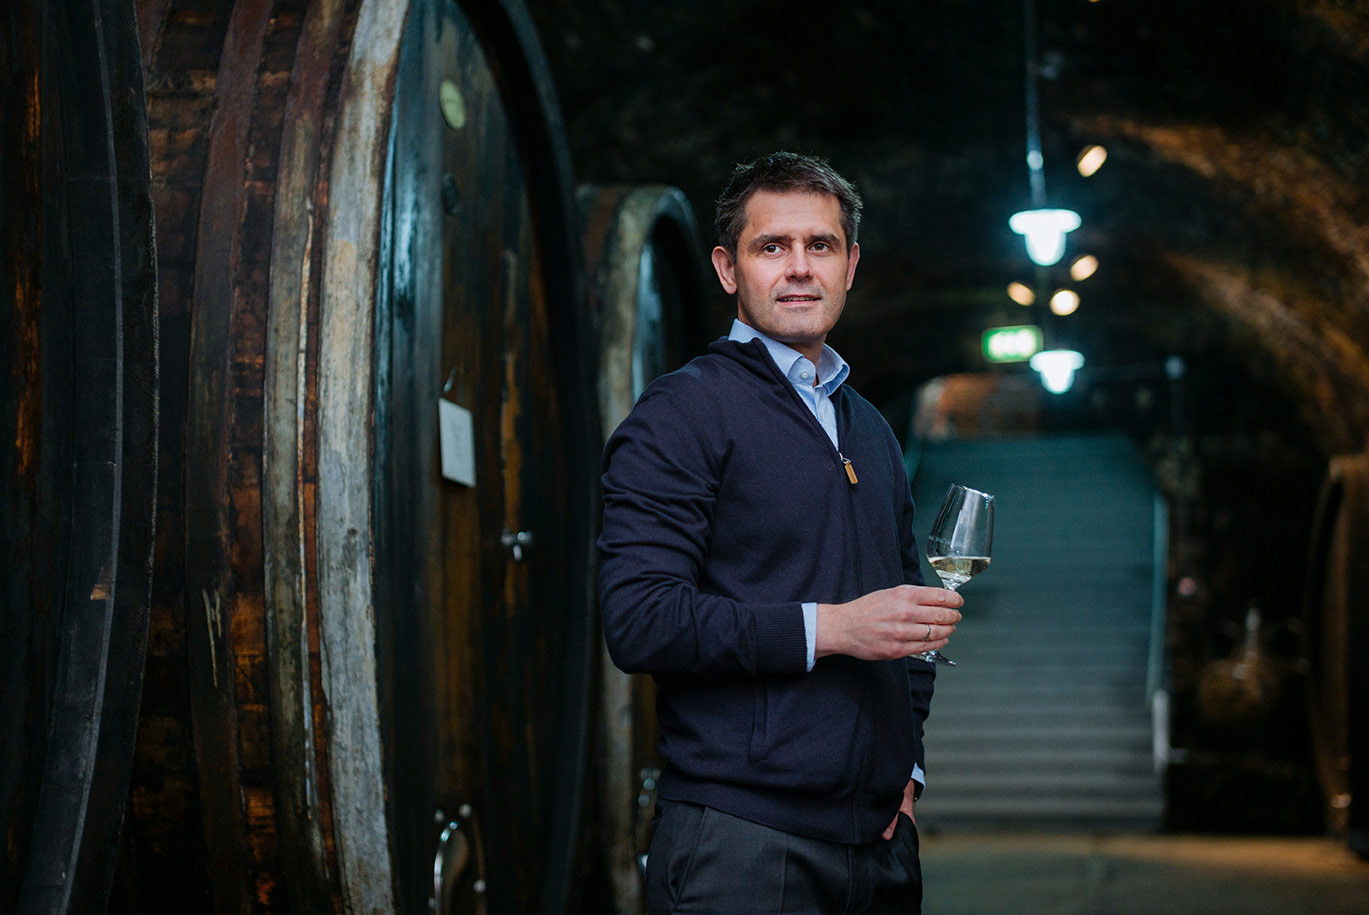 Business-Portrait-Fotografie_People_006_Domane_Wachau_Lidl_Wine_Selection